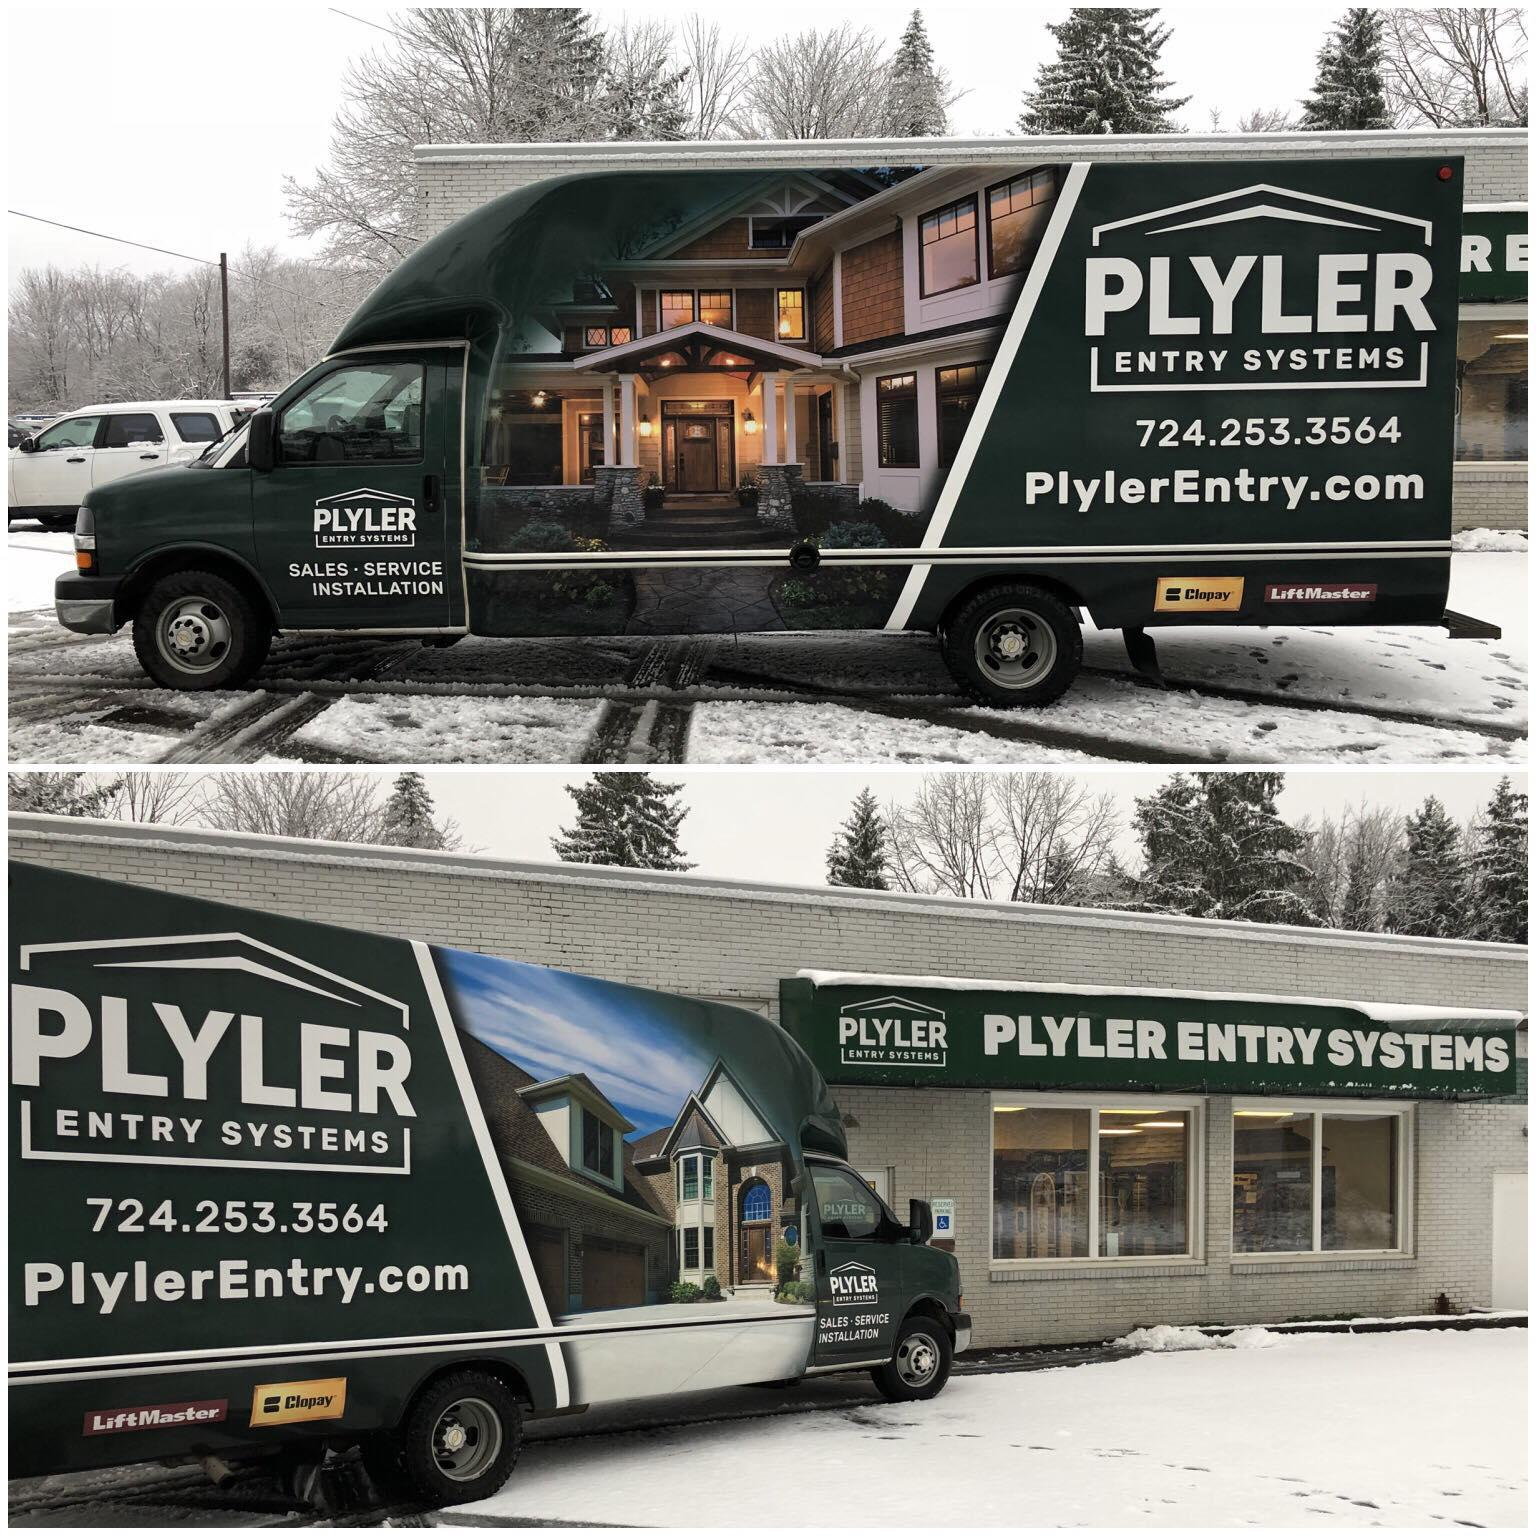 Plyler Entry Systems image 2